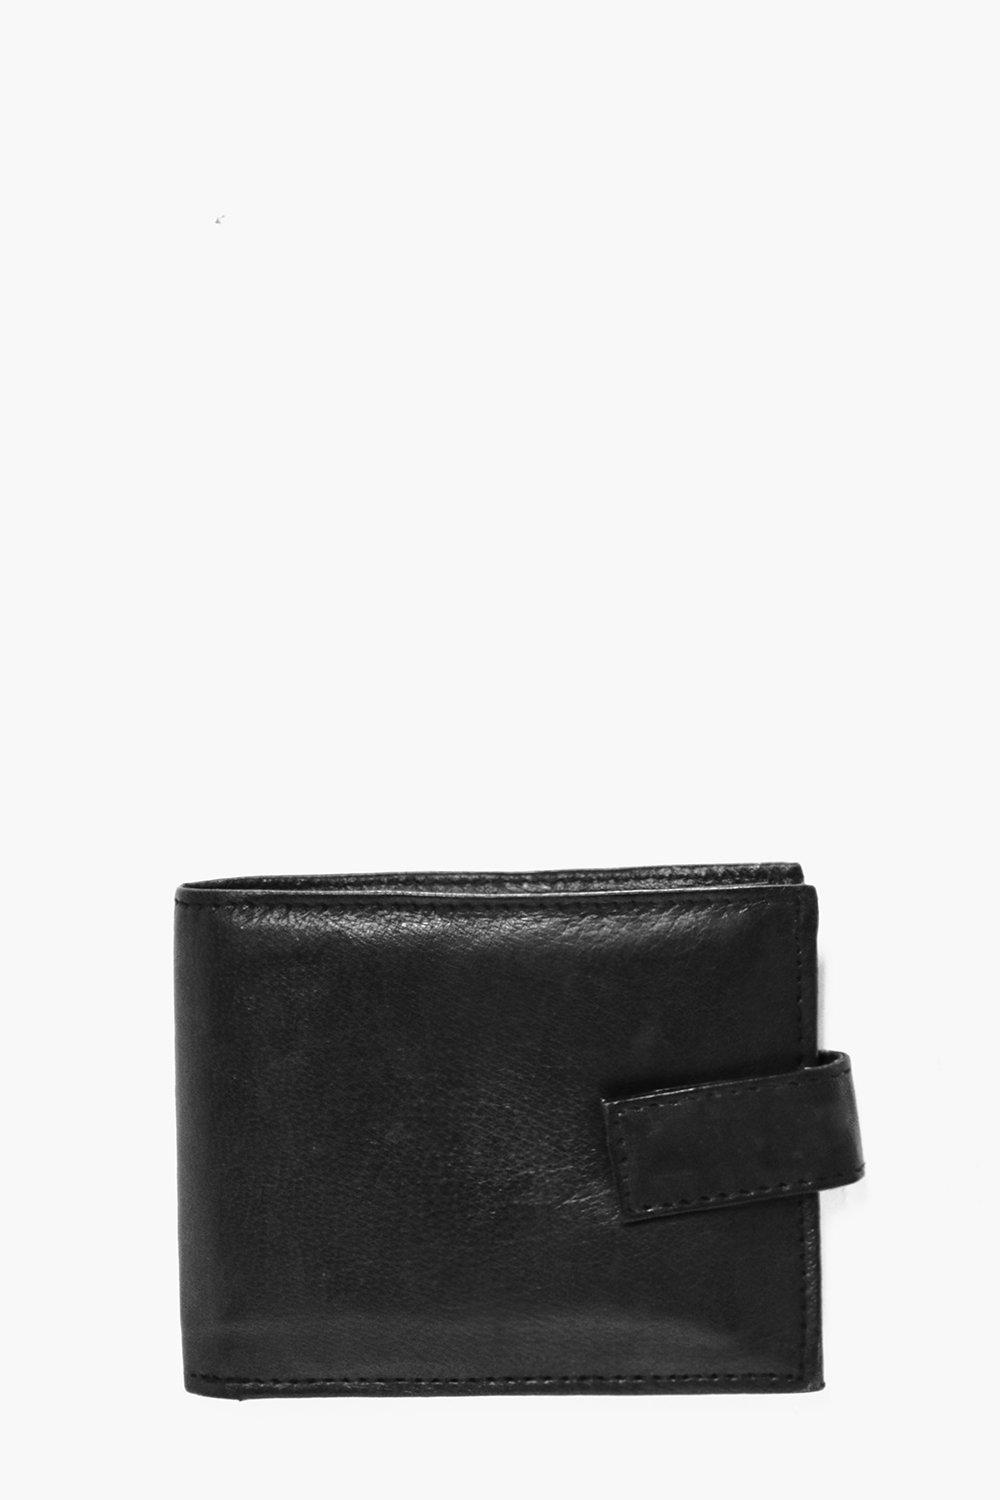 Leather Wallet With ID Flap - black - Real Leather